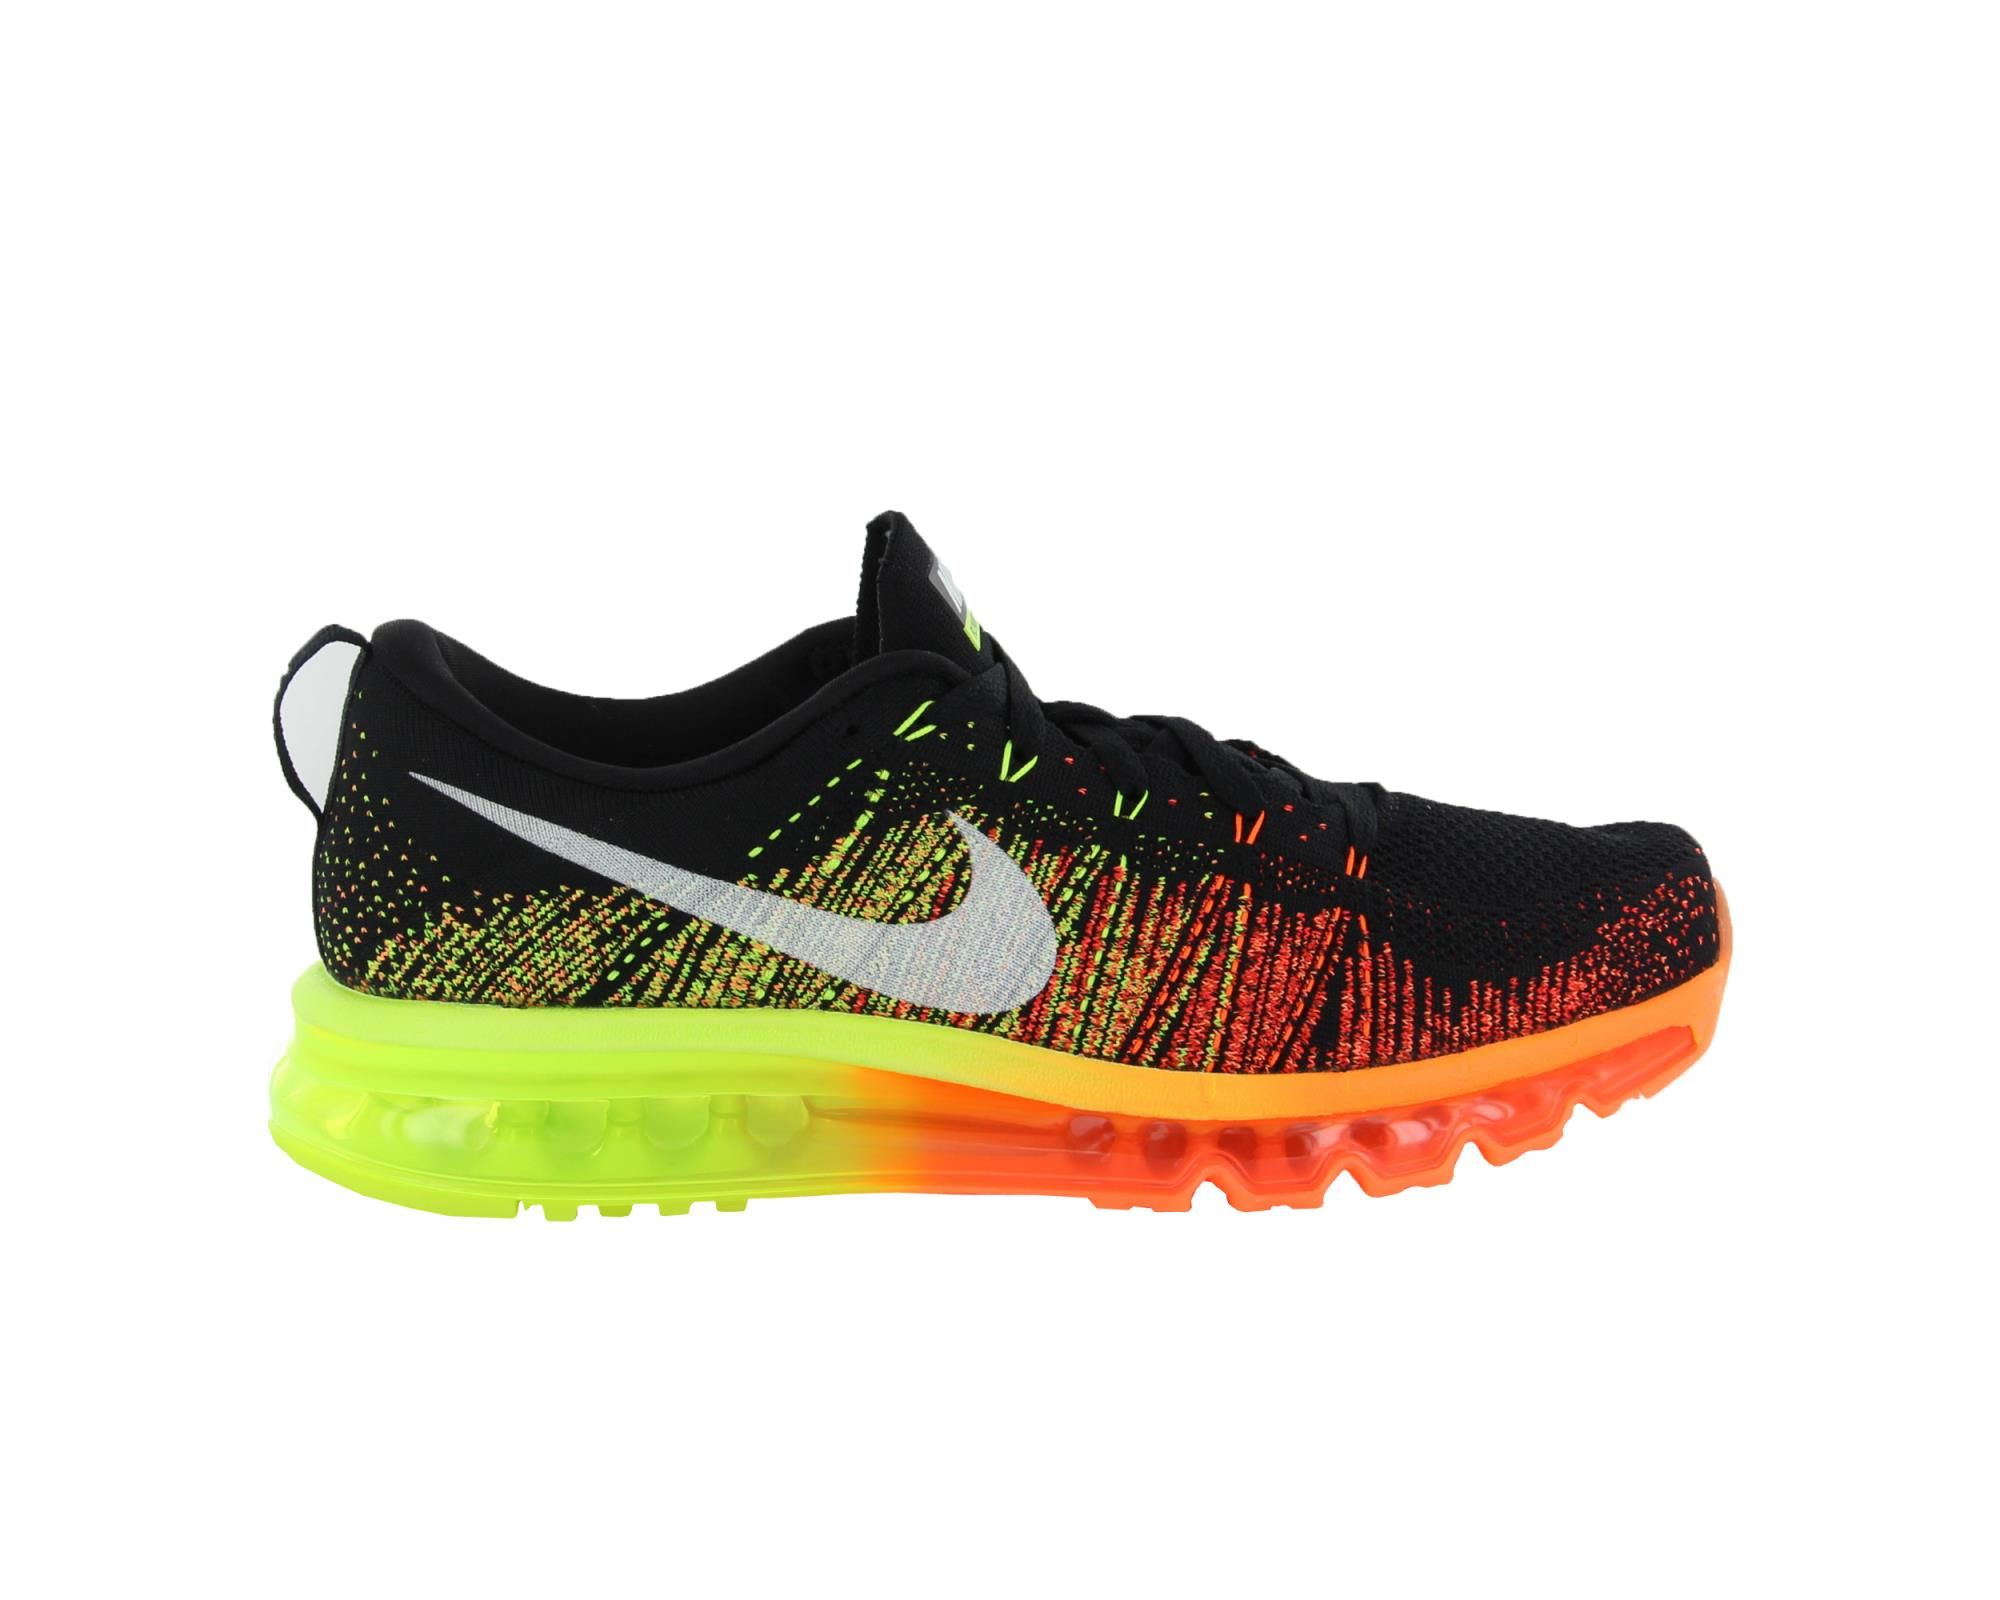 new concept 6f957 ad01d order nike air max flyknit pink d384b 70f9a  coupon code for nike 620469  018 kosu.korayspor nike 87ffe 3ba39